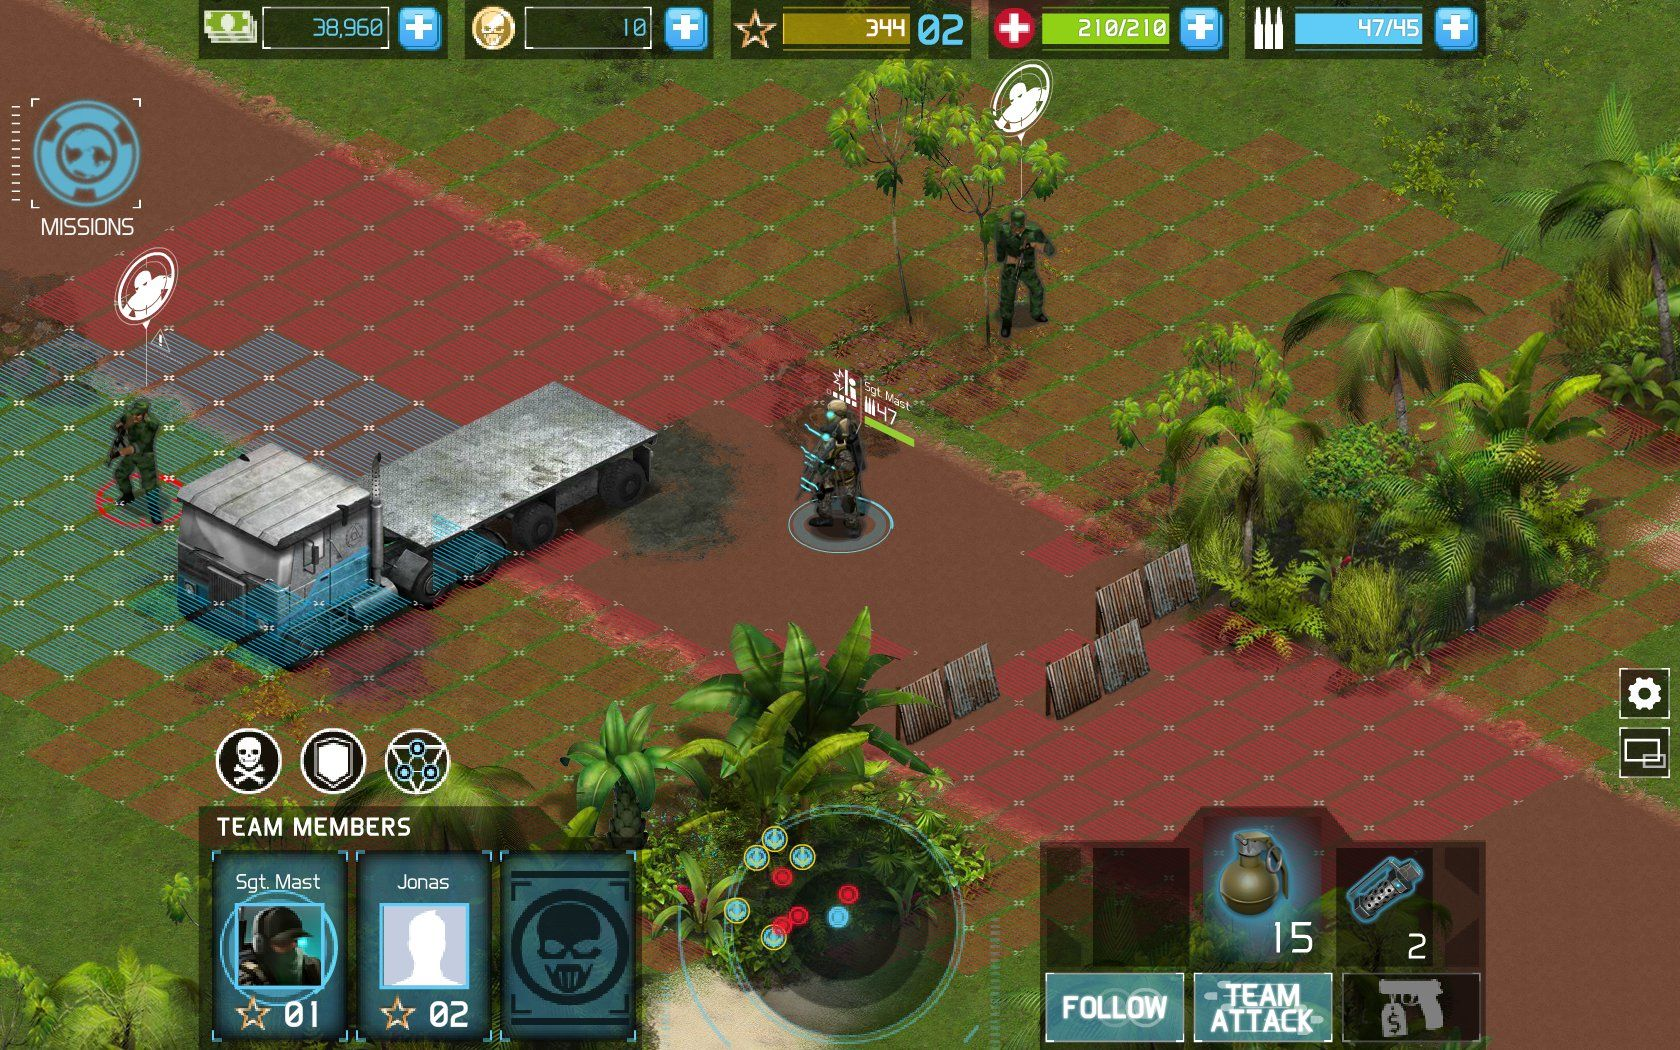 Tom Clancy's Ghost Recon: Commander Browser About to throw a grenade.